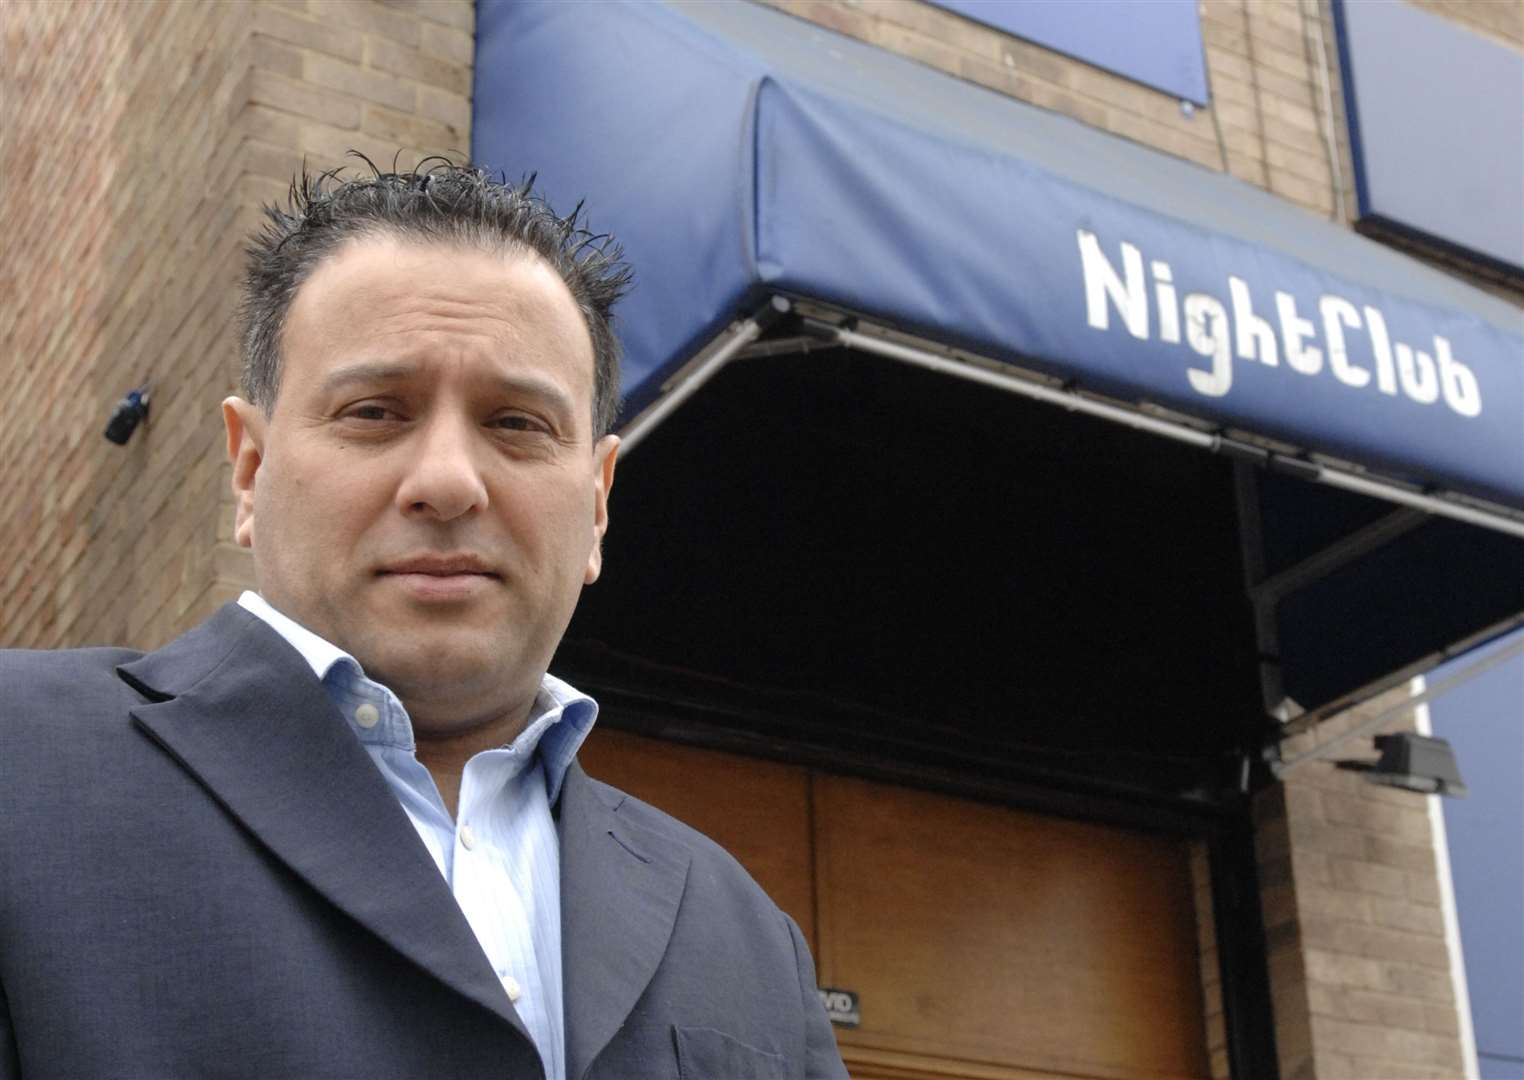 Karl Ahmad, owner of the Vivid in Herne Bay, was knifed outside his nightclub